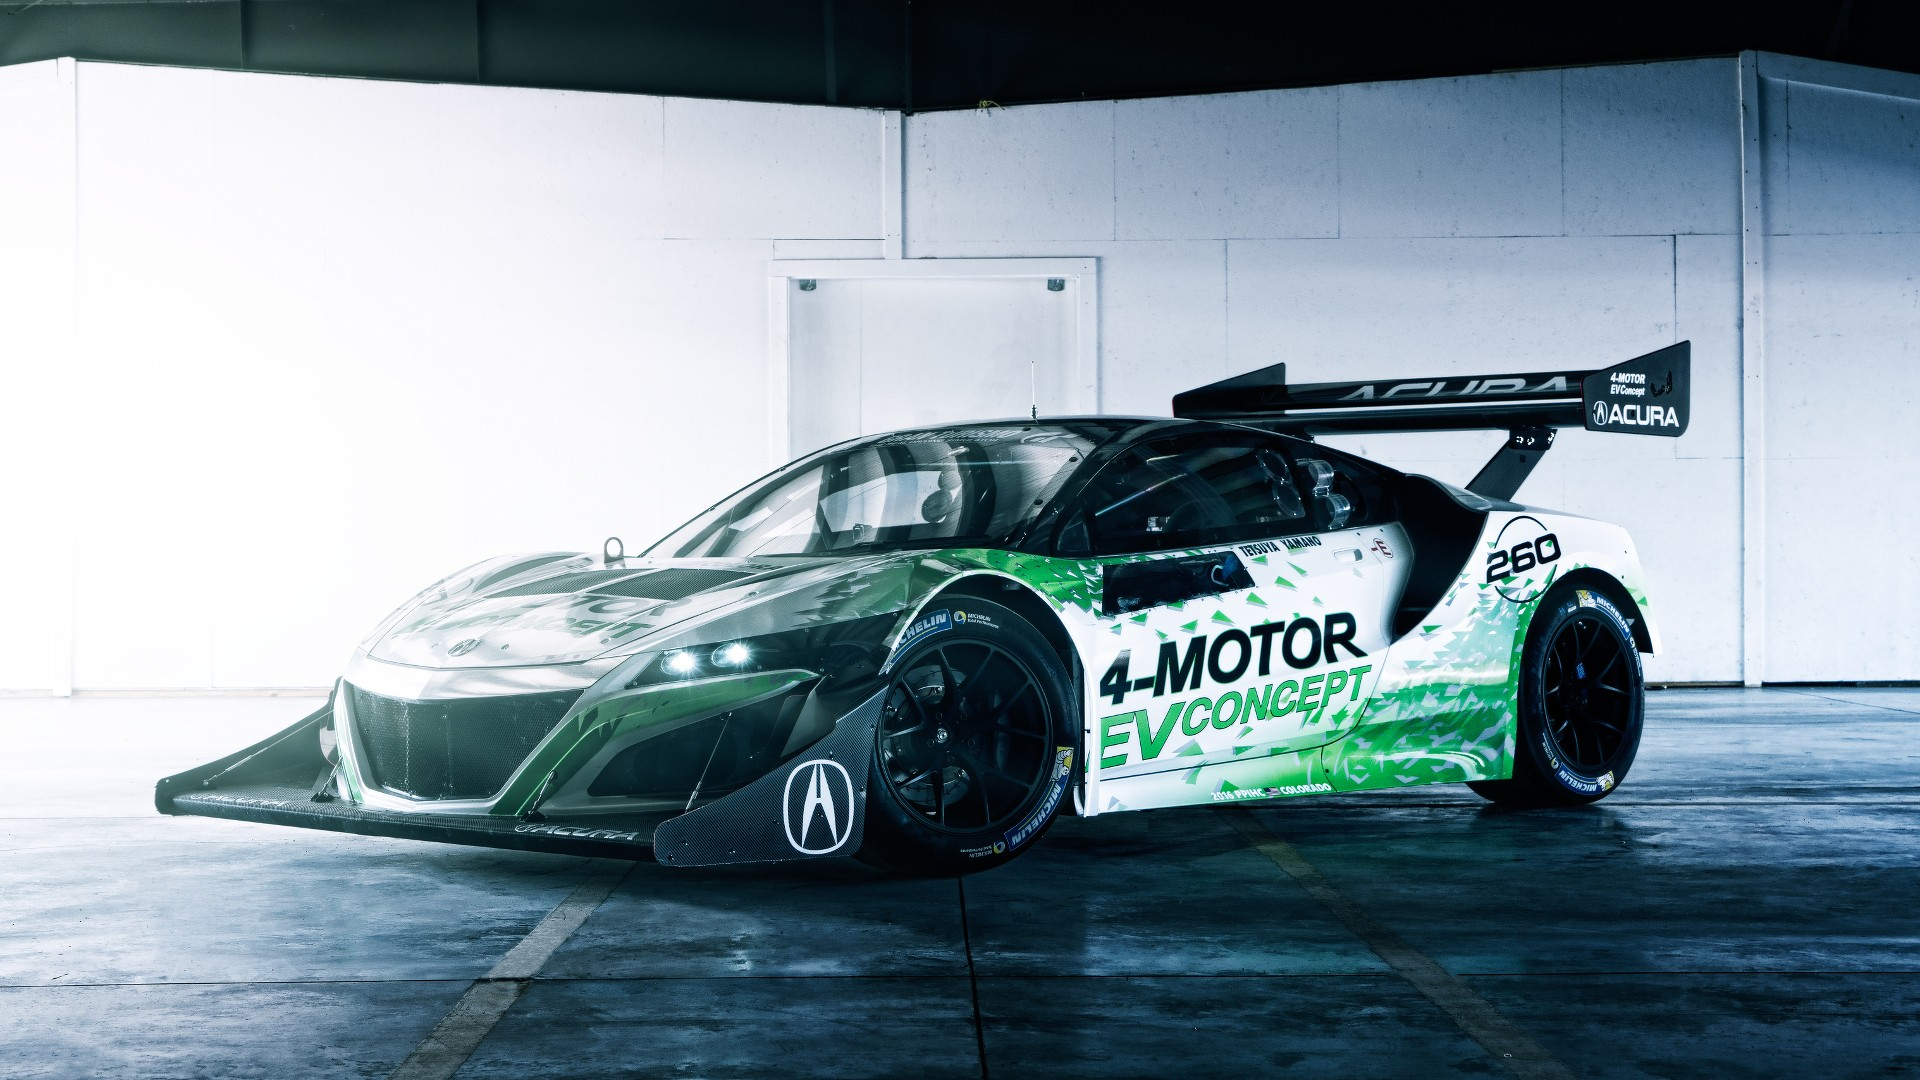 Nsx Inspired Acura Ev Concept For 2016 Pikes Peak Hill Climb